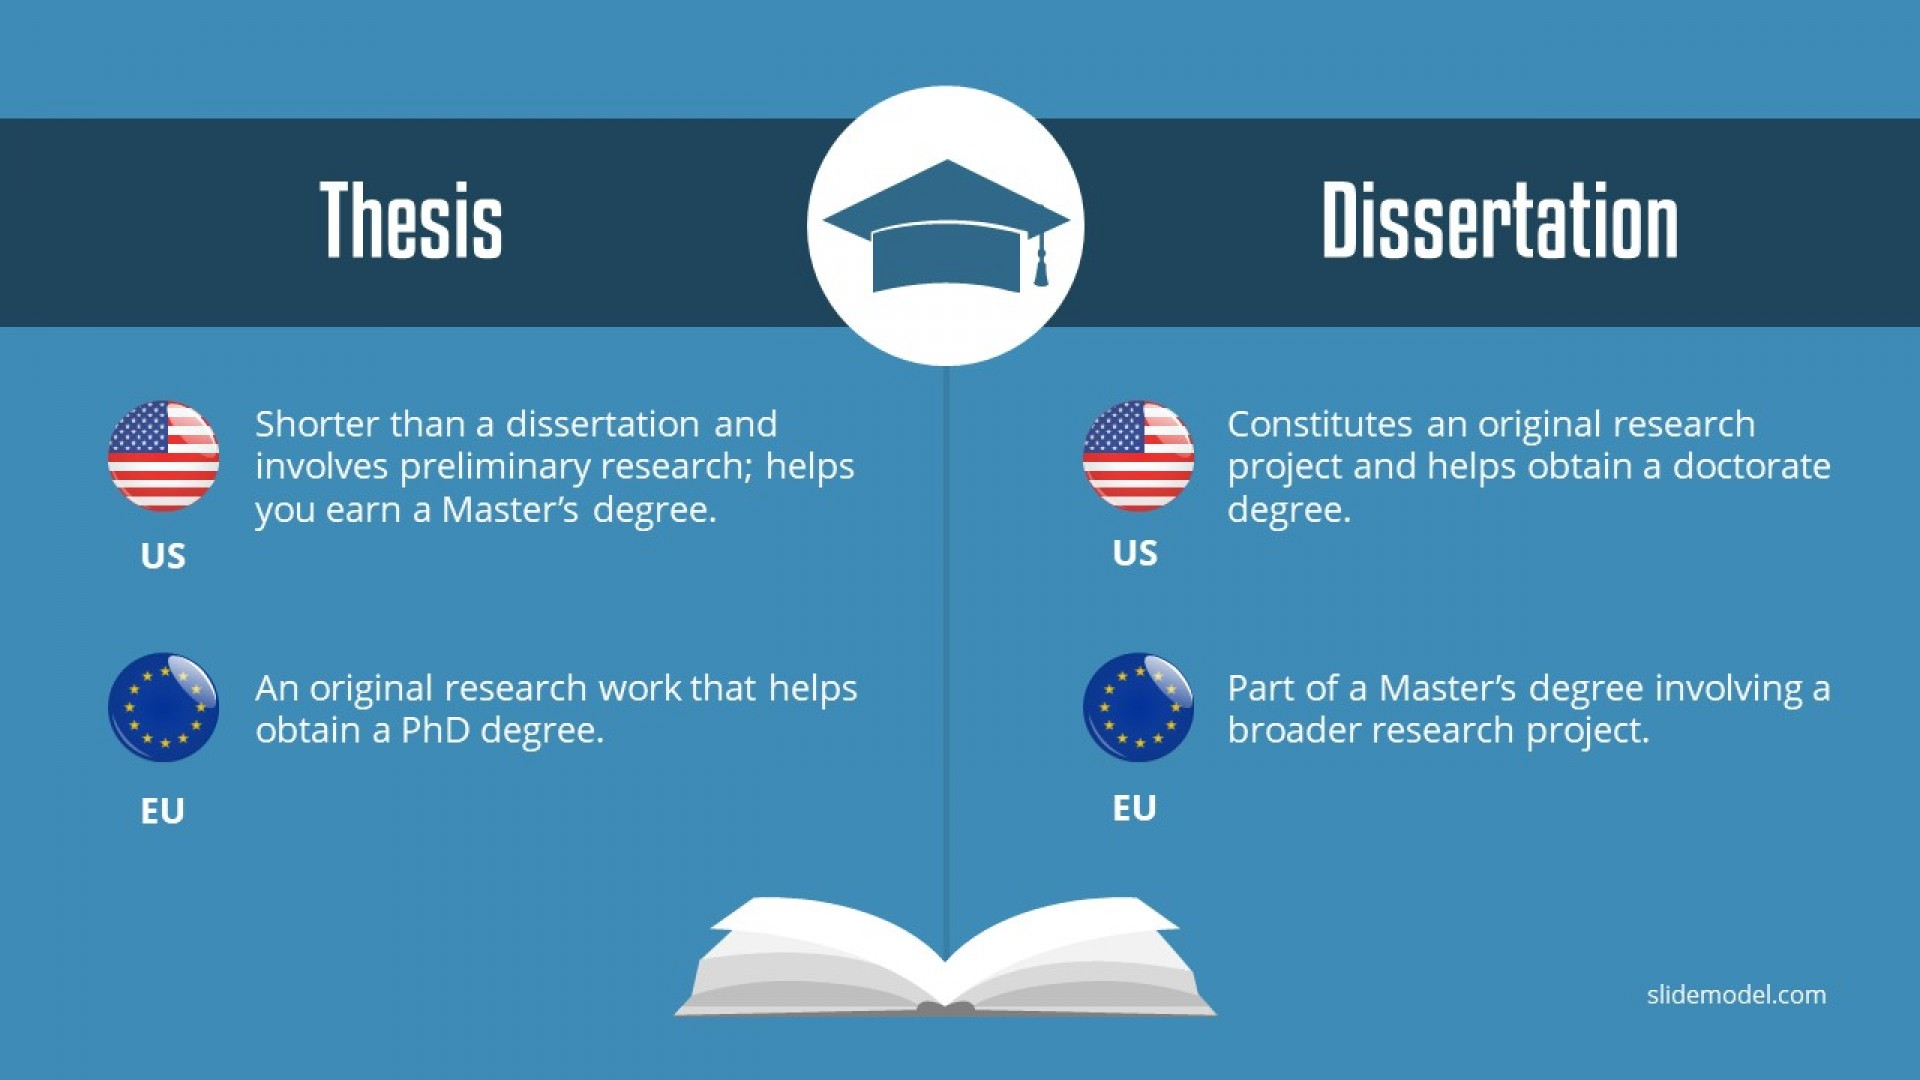 012 Research Paper Parts Of Ppt Comparison Slide Thesis Vs Staggering 5 Chapter 1 A Qualitative 1920